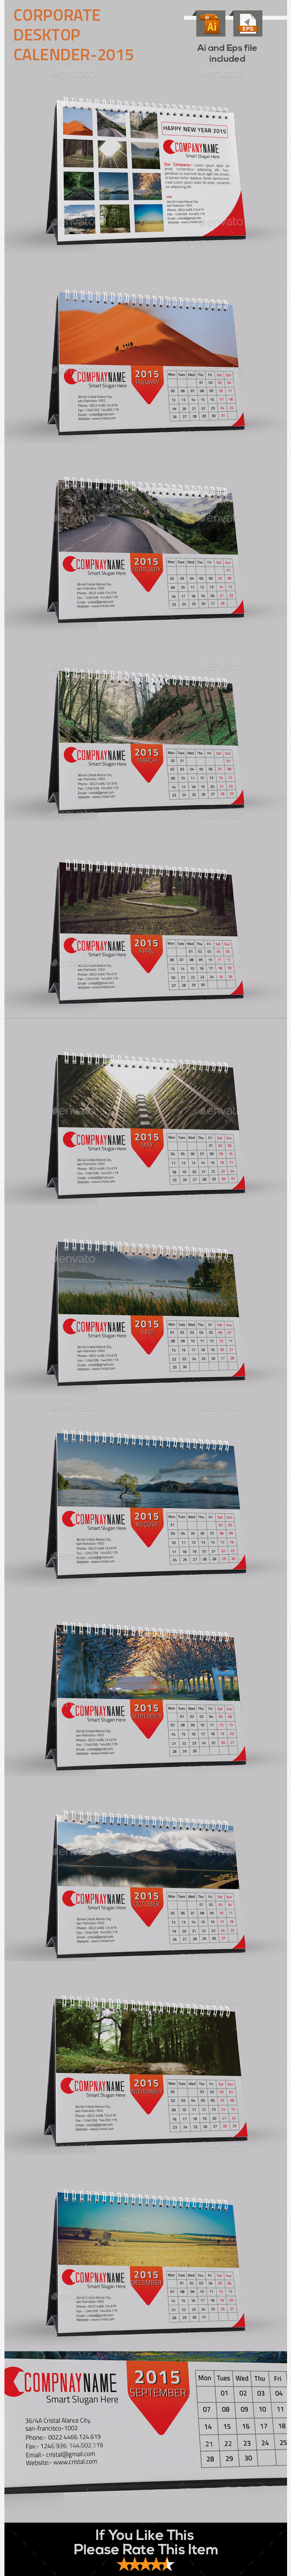 GraphicRiver Corporate Desk Calendar for 2015 9648109